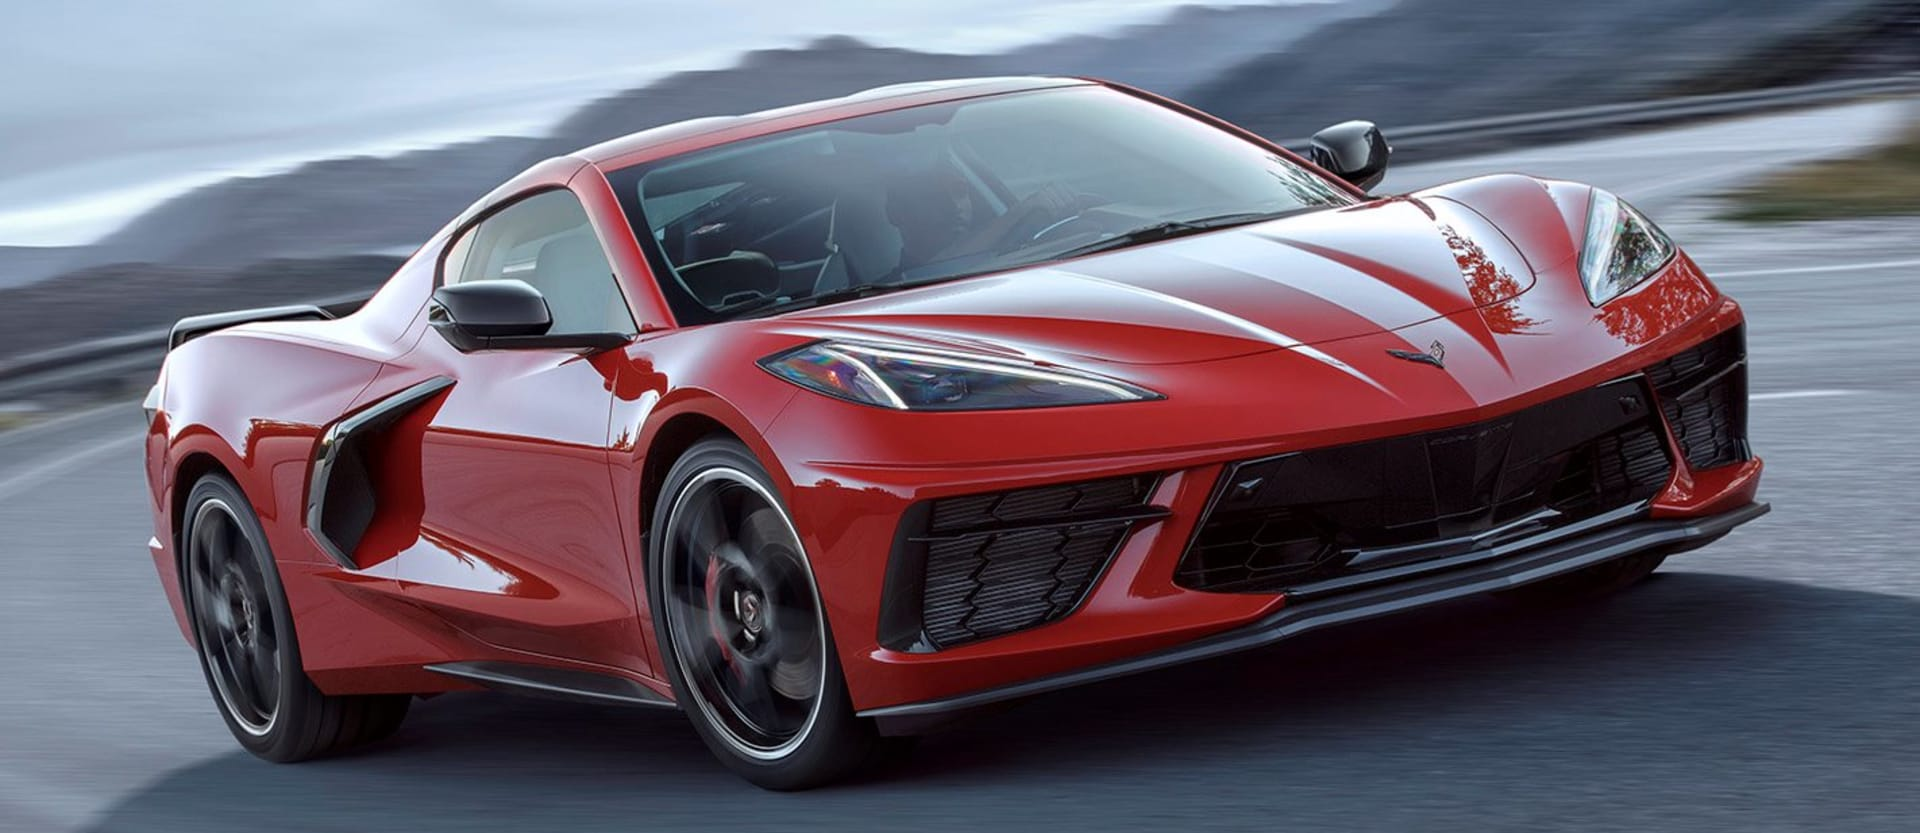 2020 Chevrolet Corvette Stingray Front Side Action Jpg